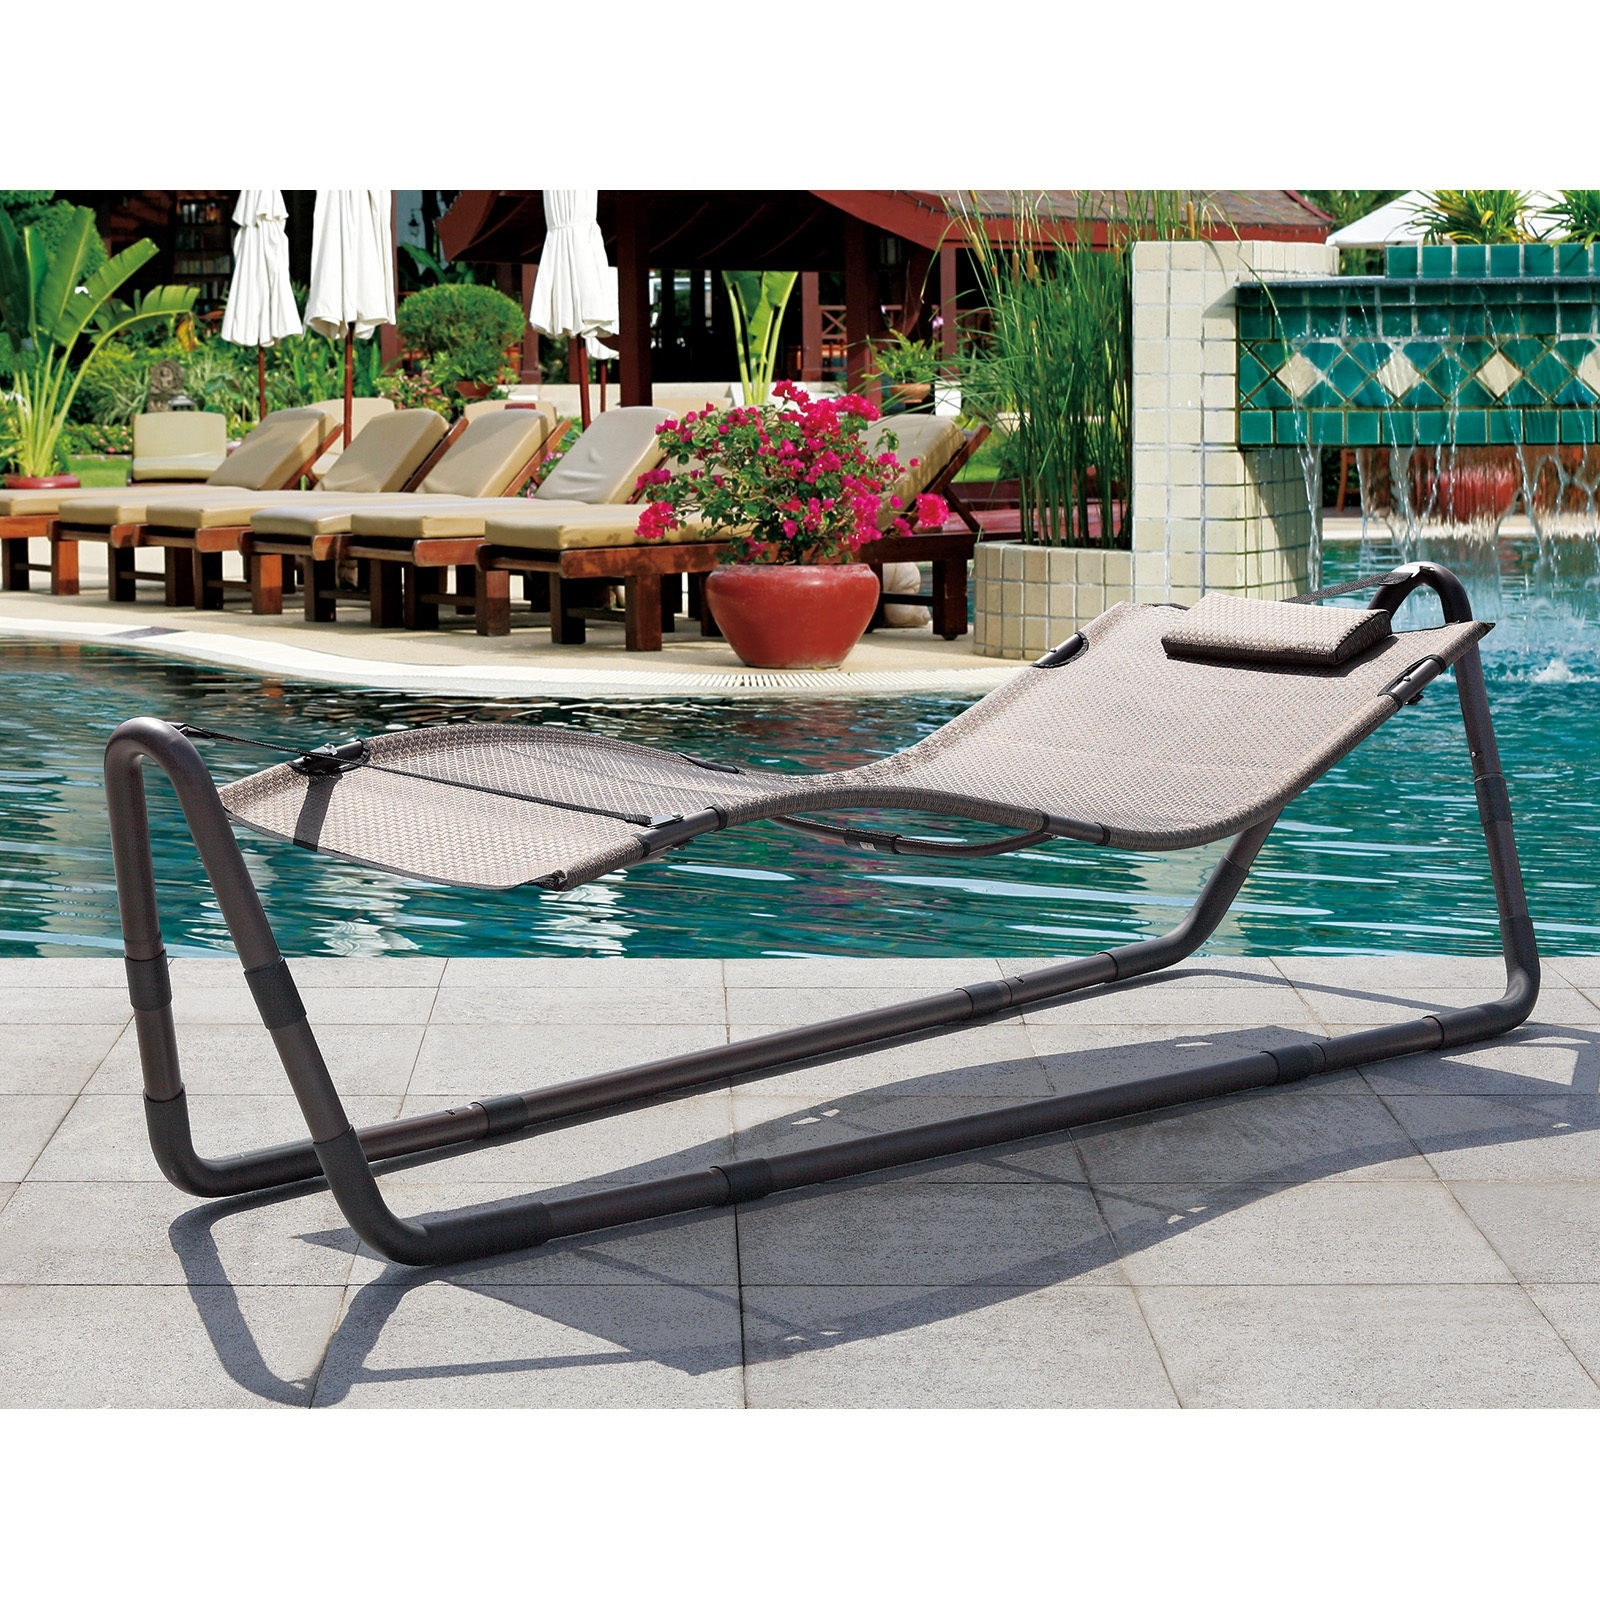 Pool Deck Chairs Modern Outdoor Patio Hammock Sun Bed Deck Pool Lounge Chair